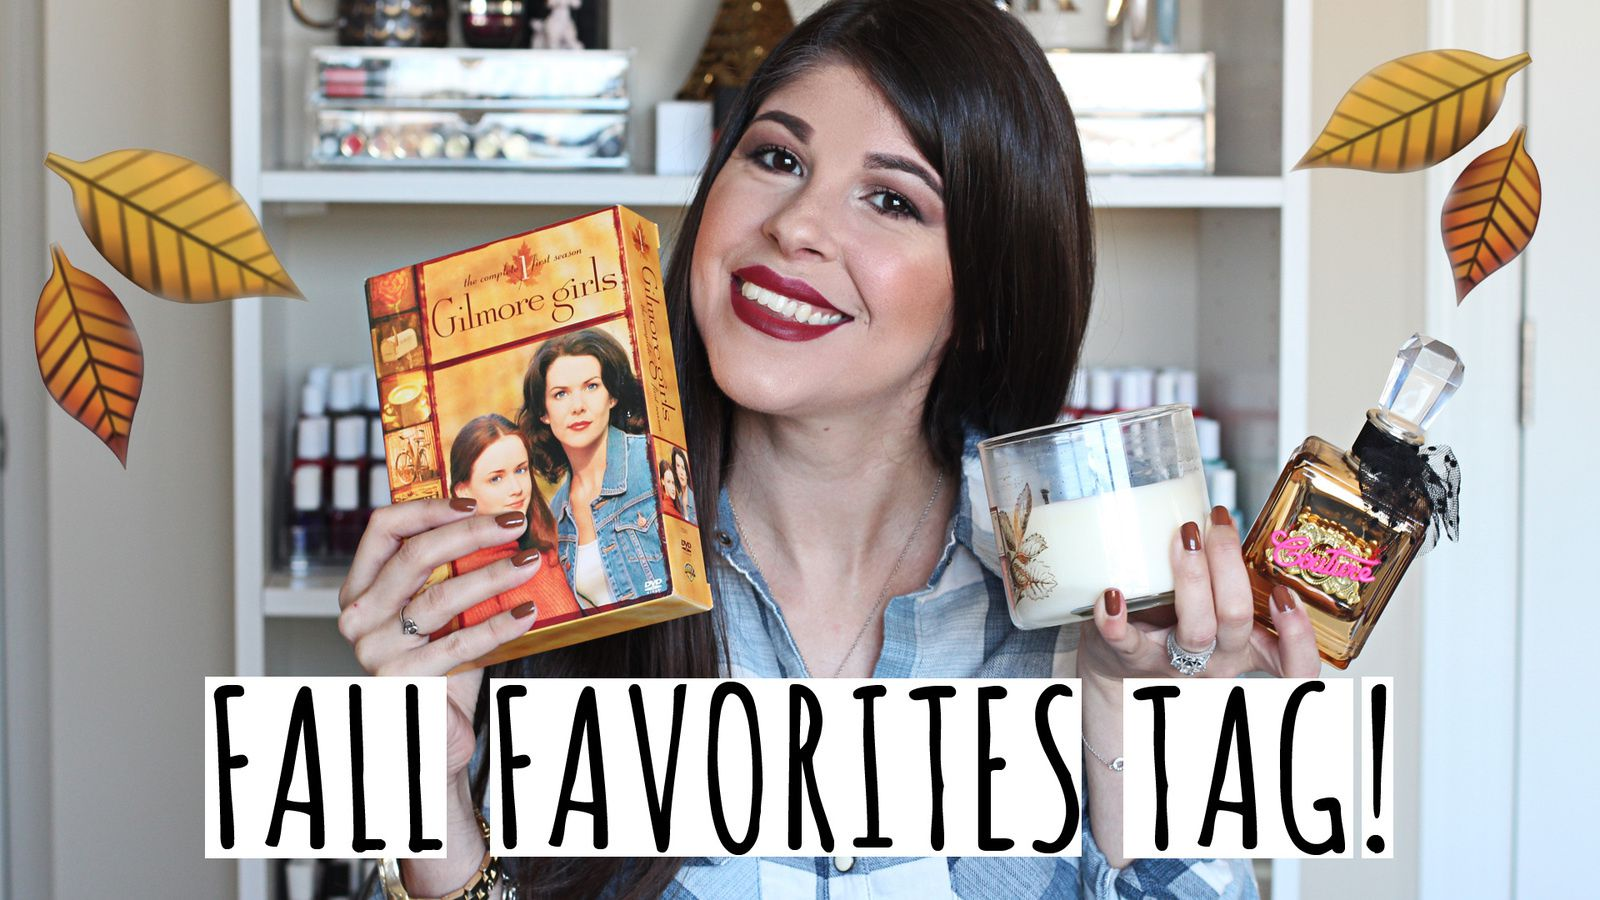 FALL FAVORITES TAG! 2016